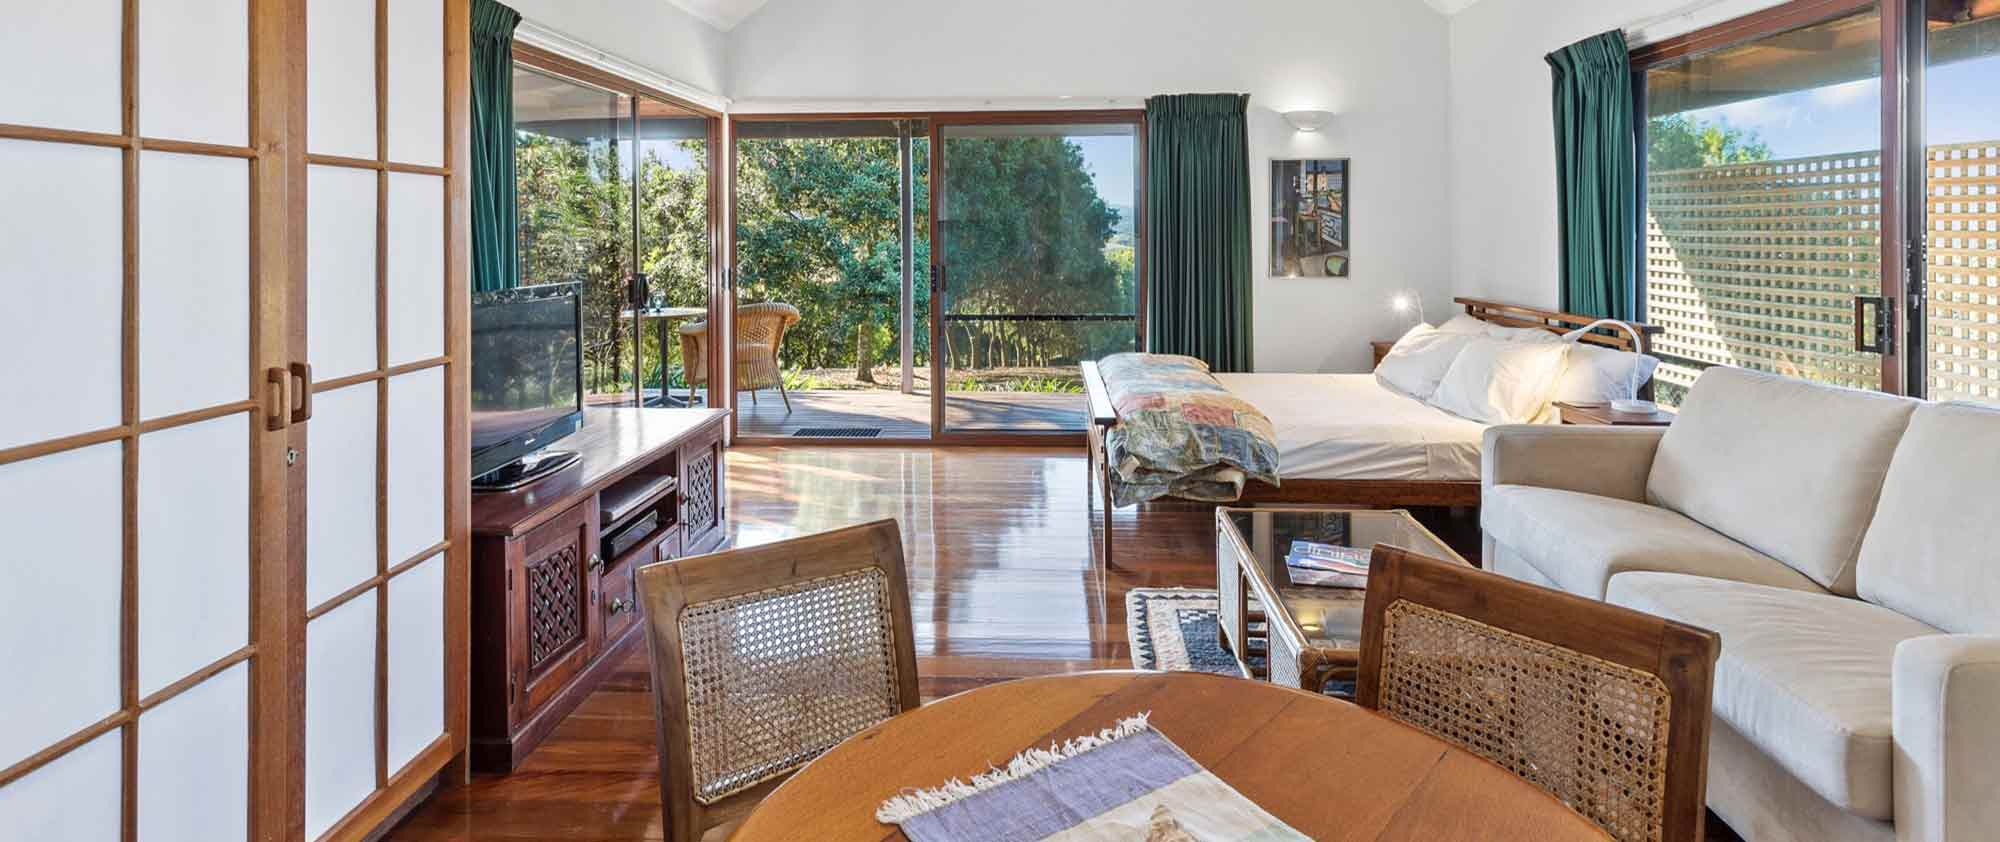 byron hinterland accommodation